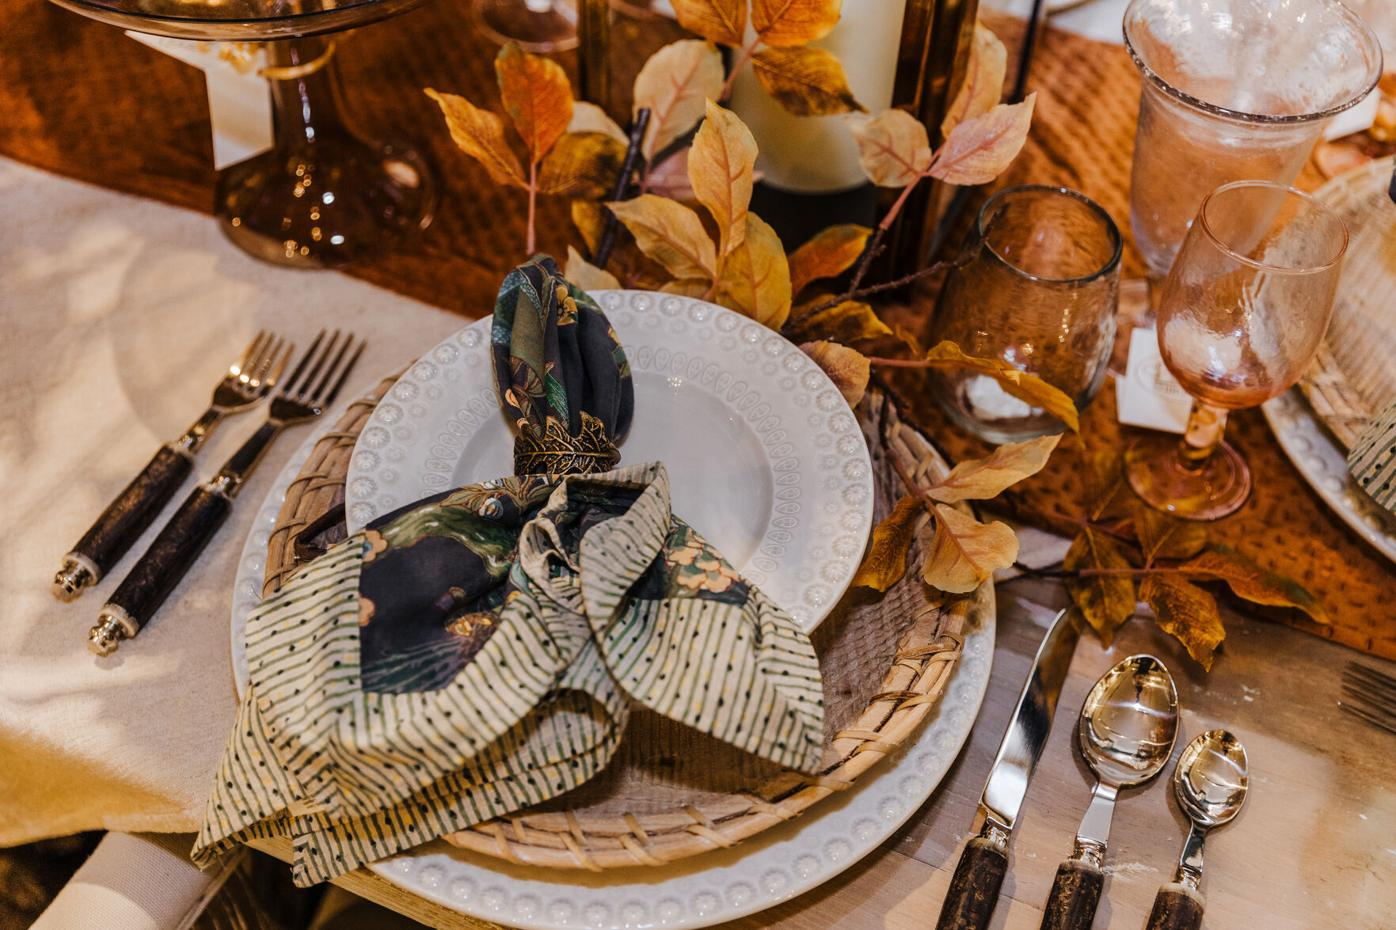 Placemats and napkins